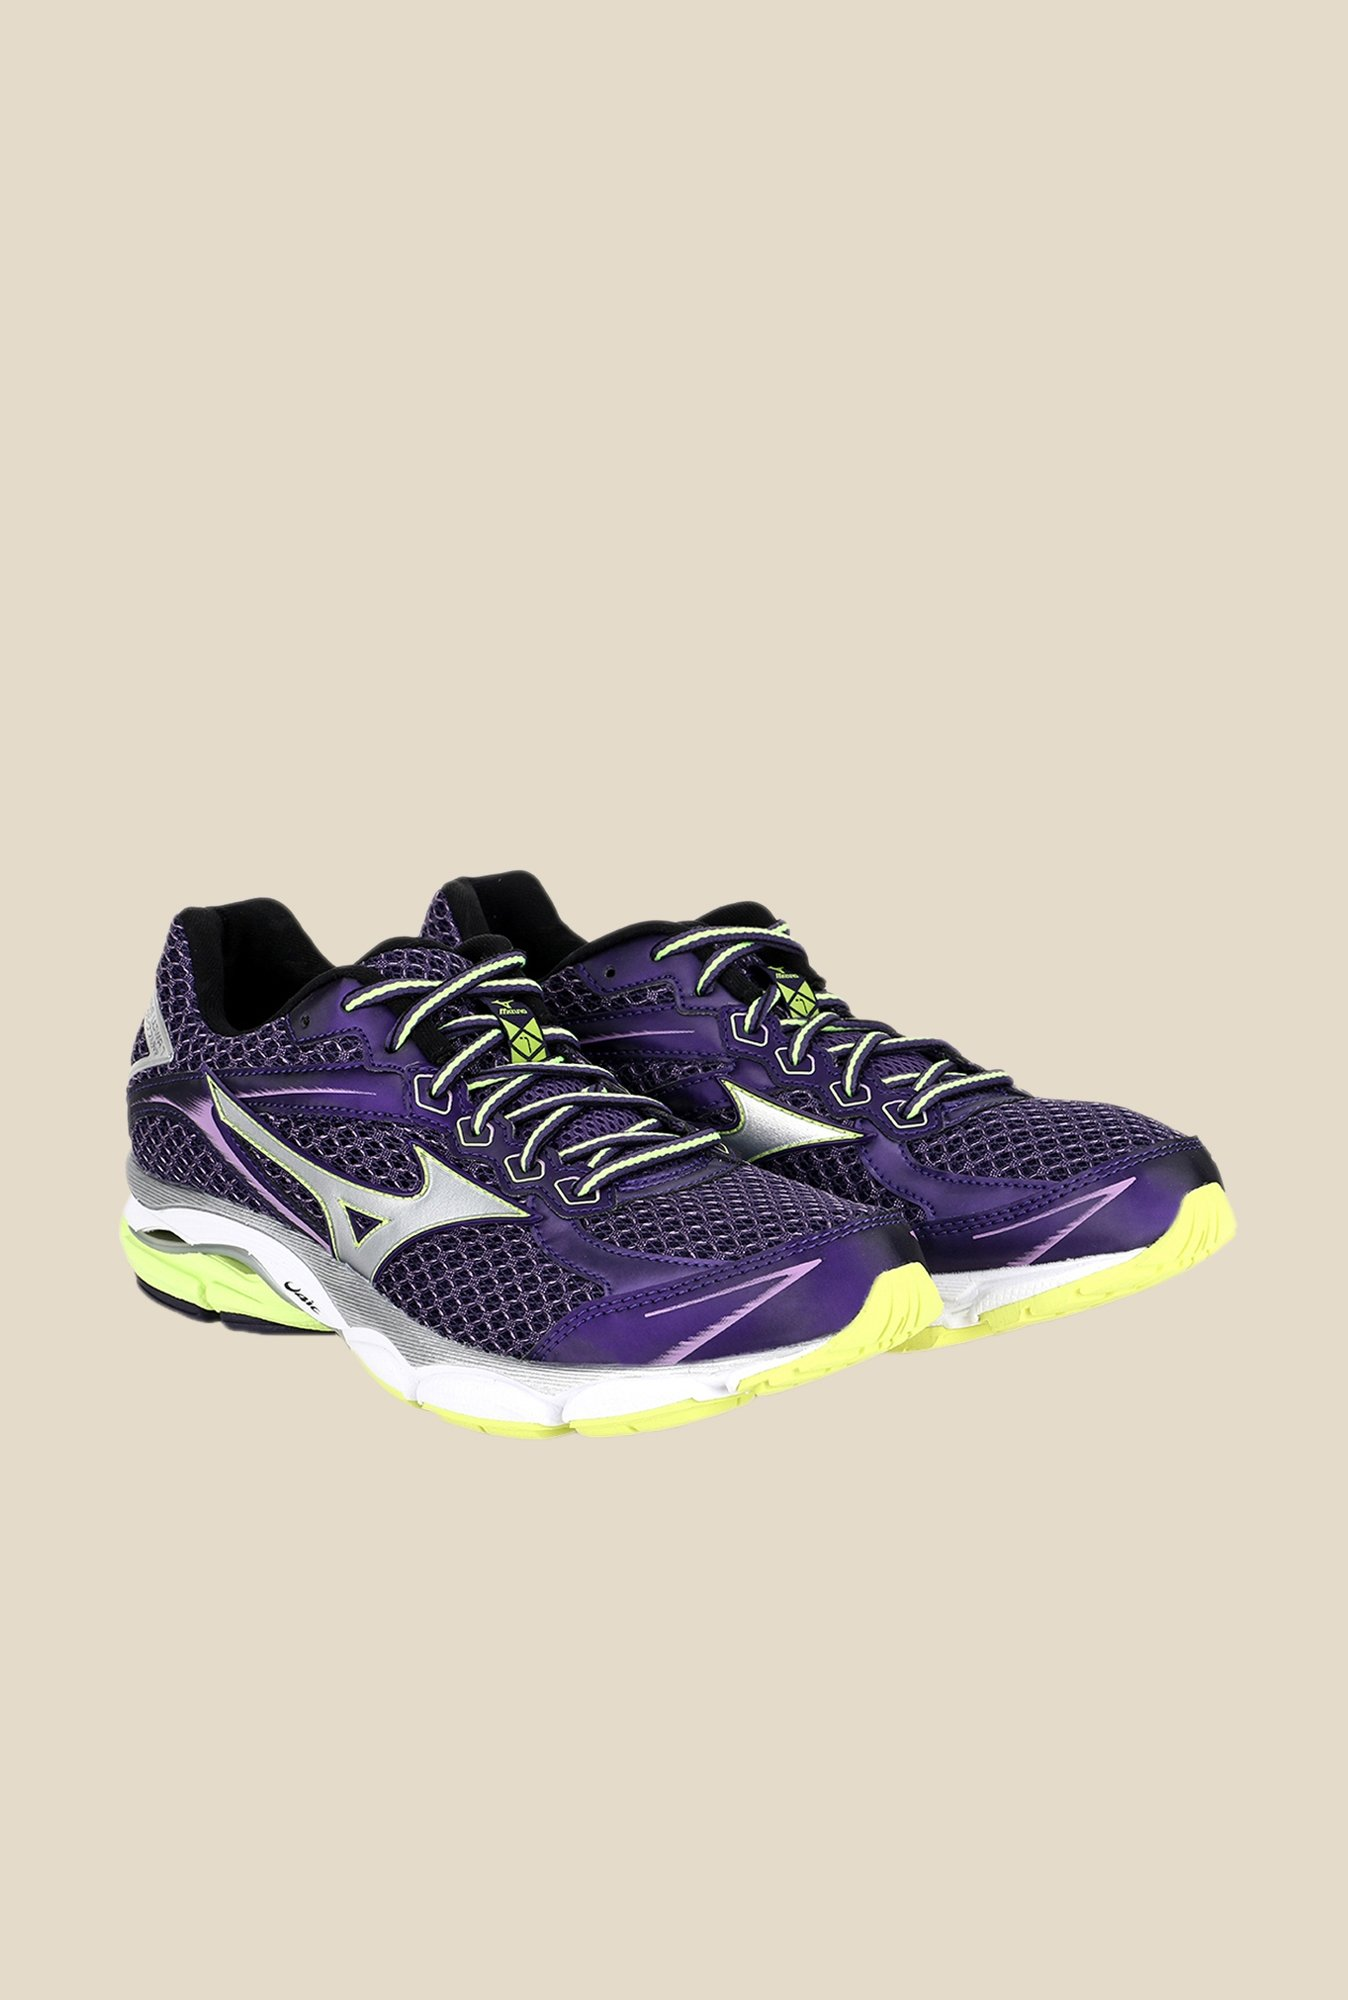 Mizuno Wave Ultima 7 Purple & Silver Running Shoes